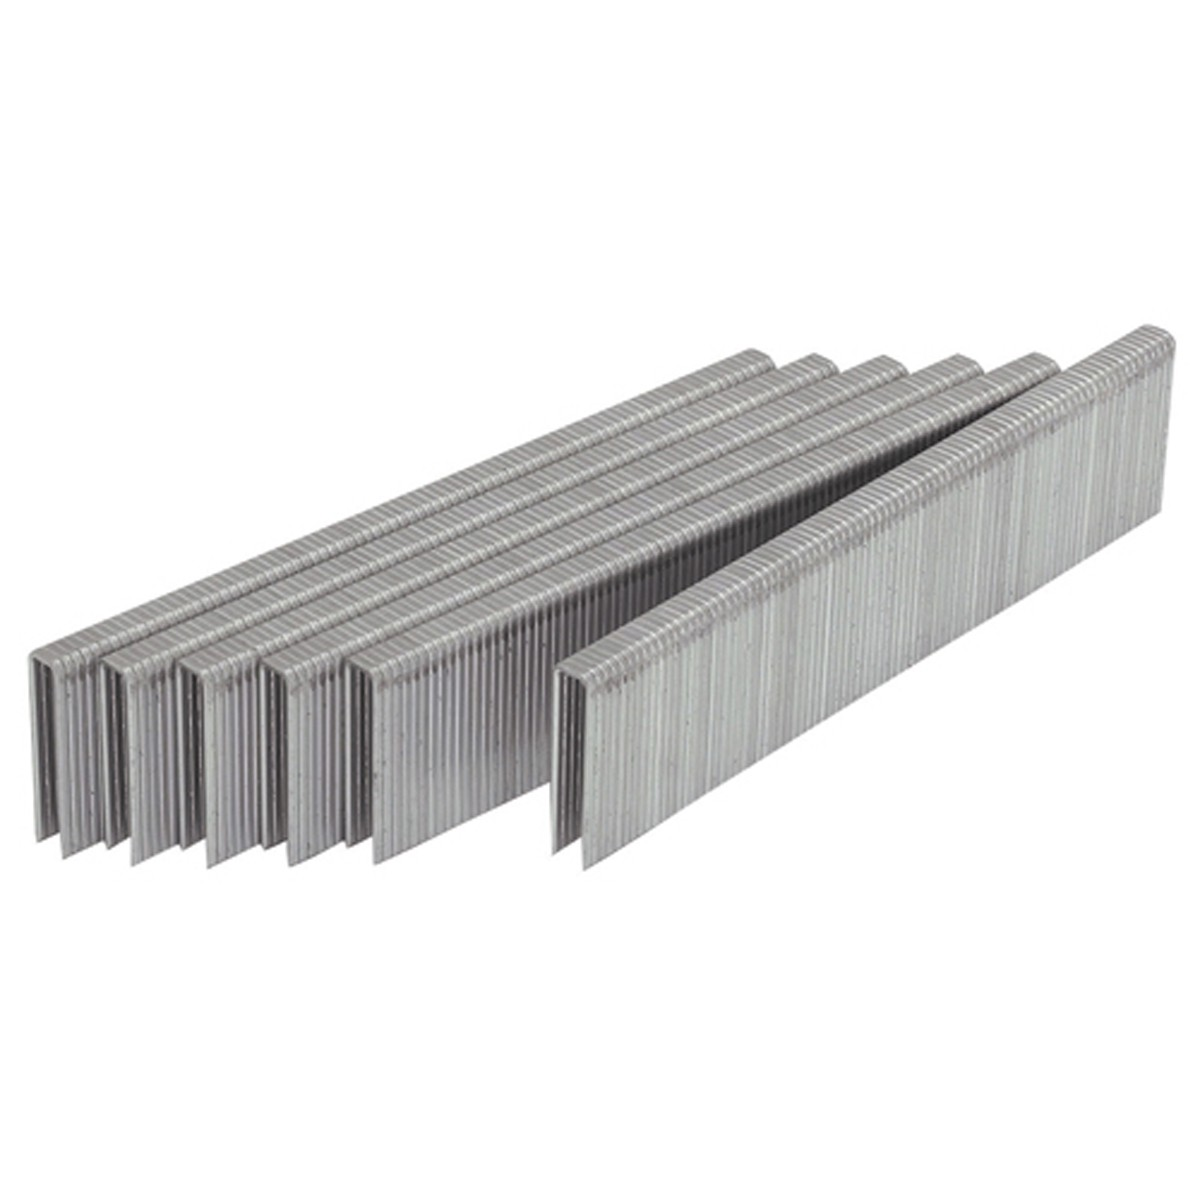 1-1/8 in. x 1/4 in. Crown 18 Gauge Staples 5000 Pc